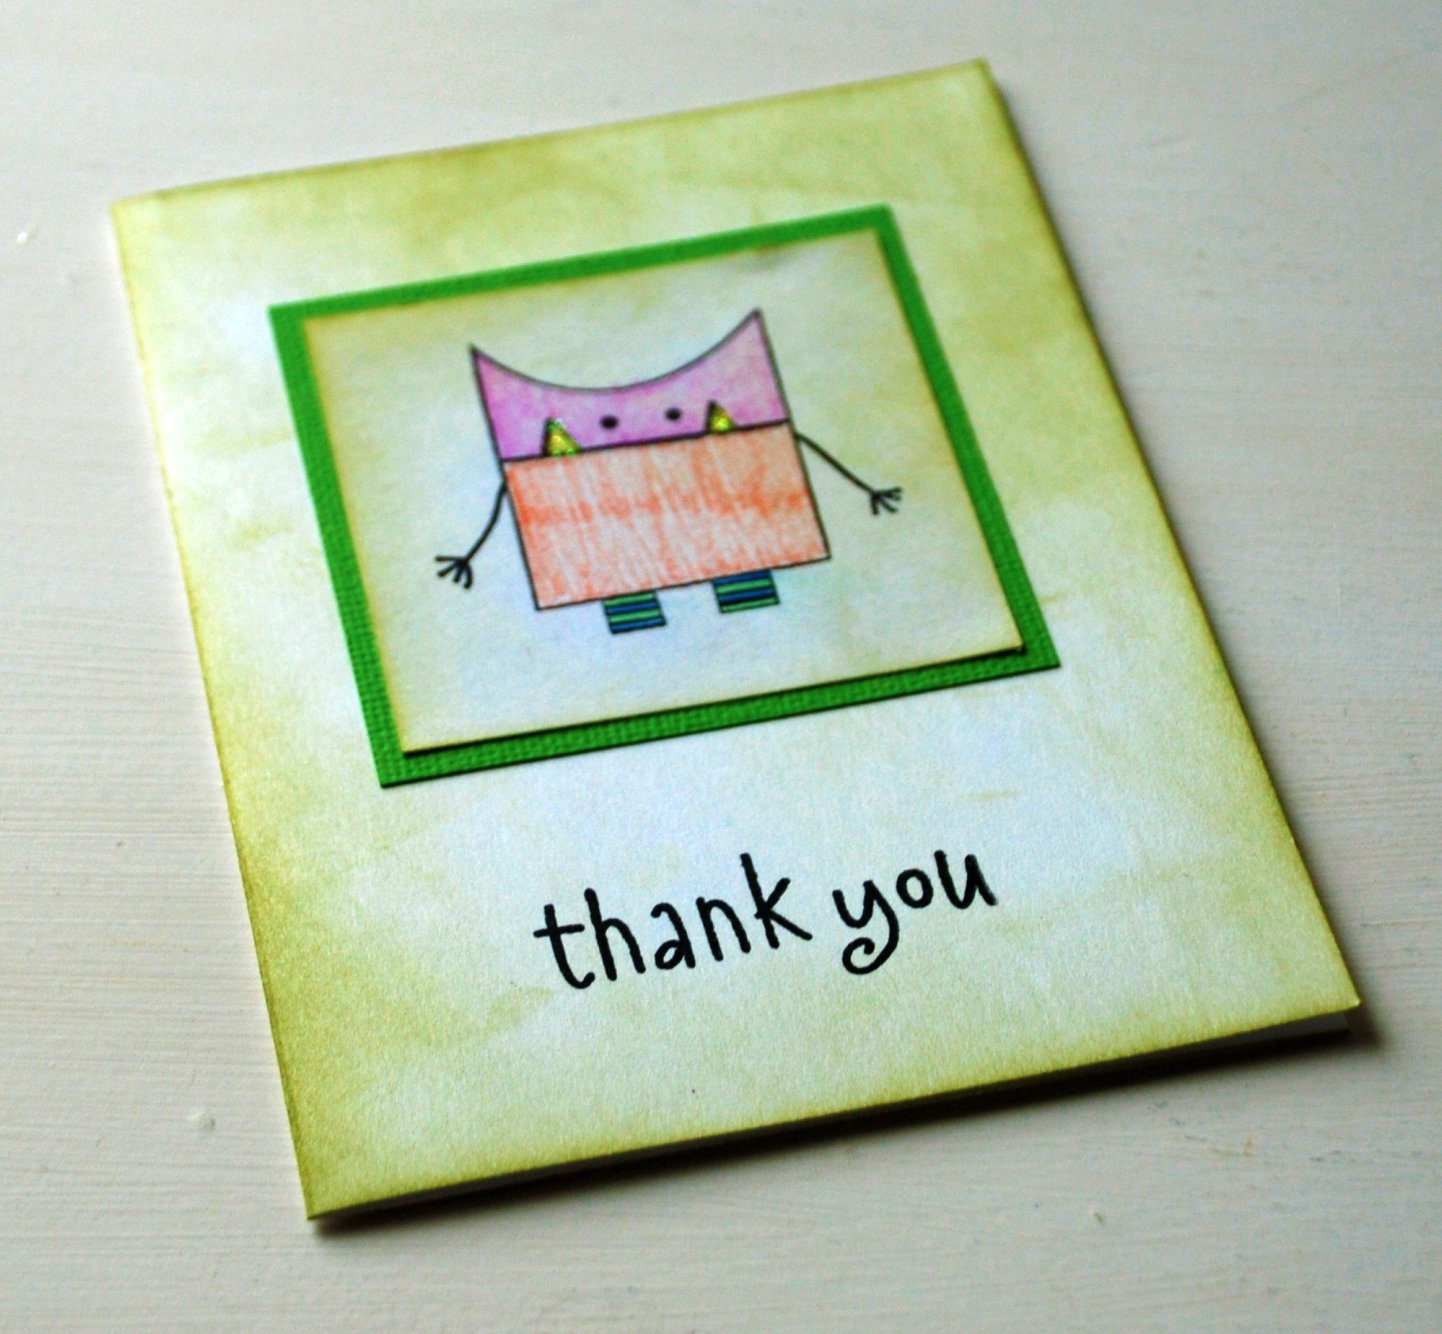 Monster thank you by AForestFrolic (stampinmom) on Flickr Used unmodified under CC BY 2.0 license